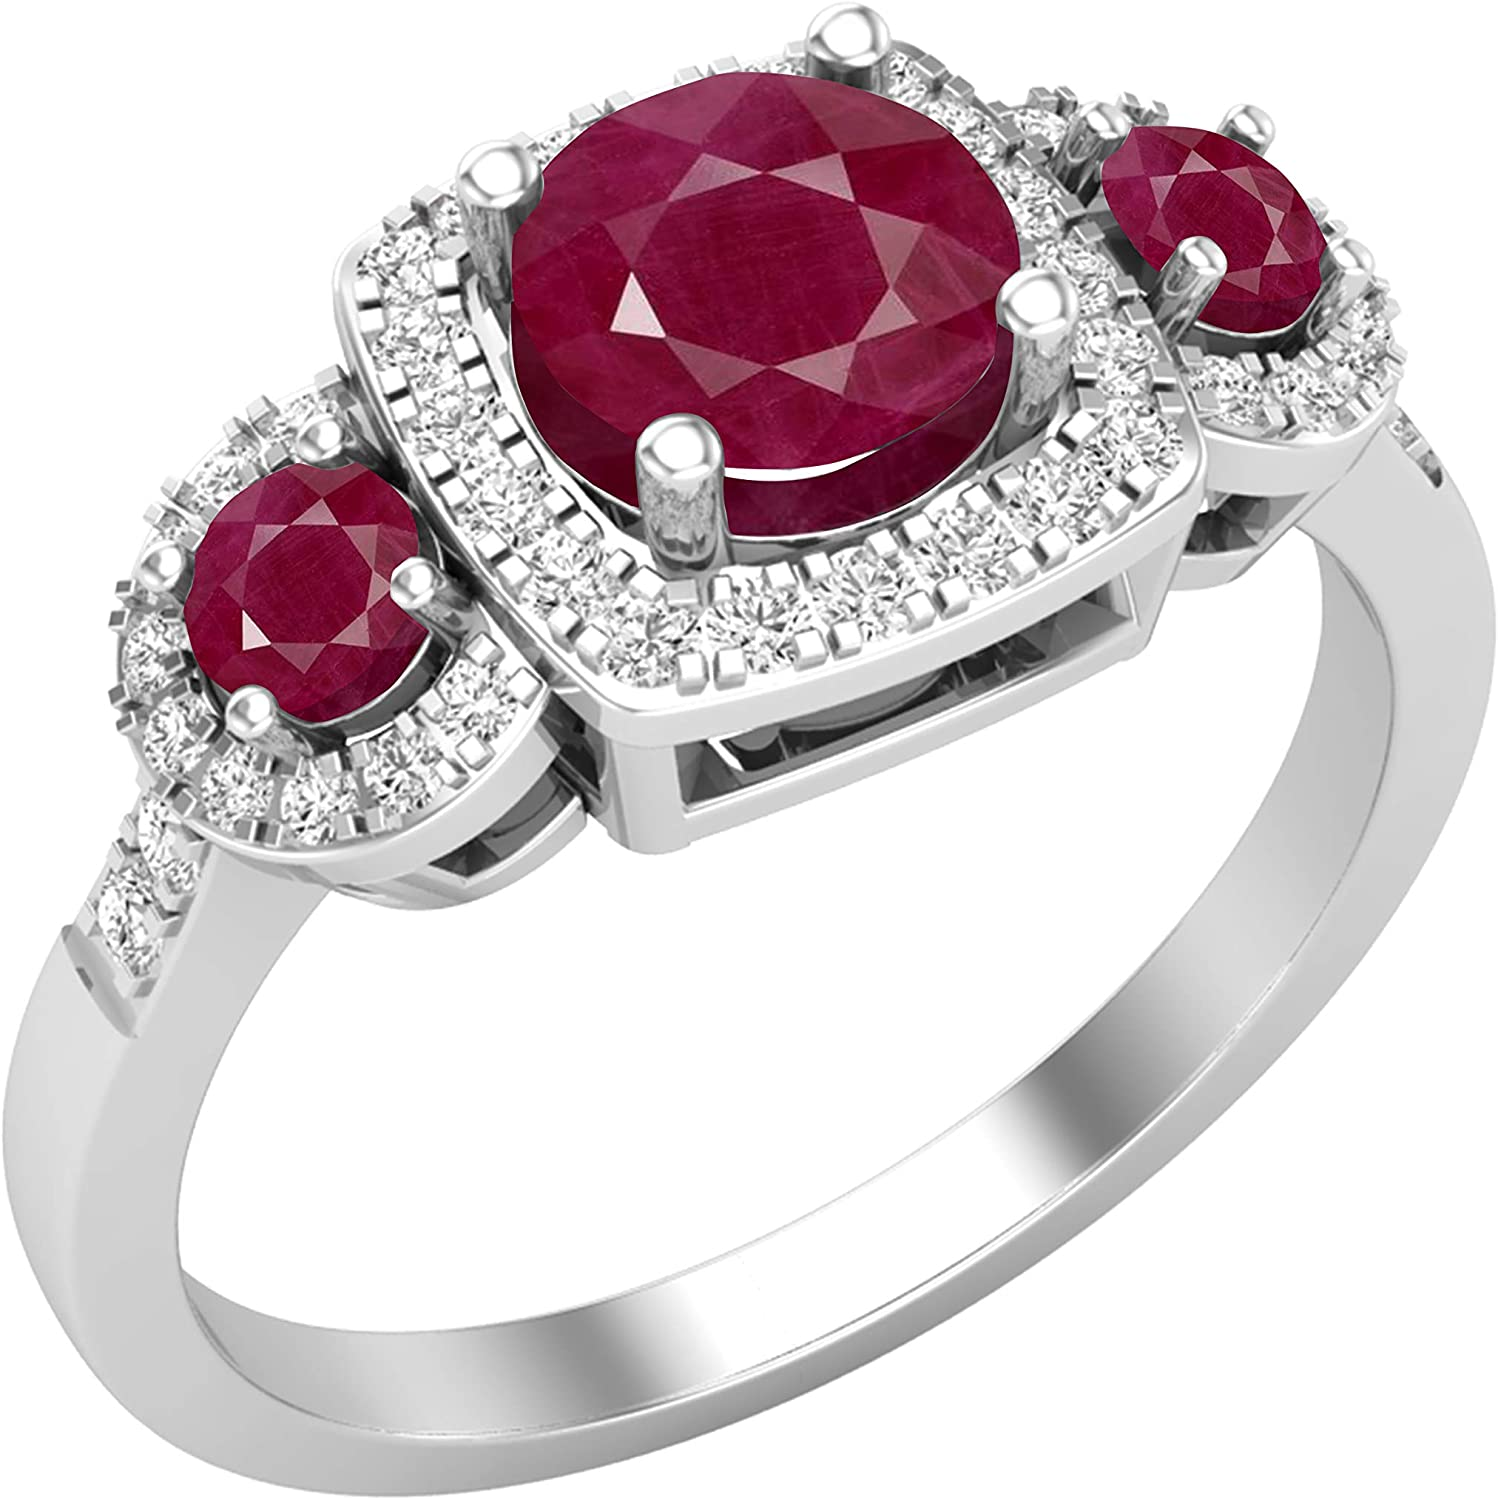 Dazzlingrock Collection Round Gemstone Colorado Springs Mall White Ladies Diamond Spring new work one after another 3